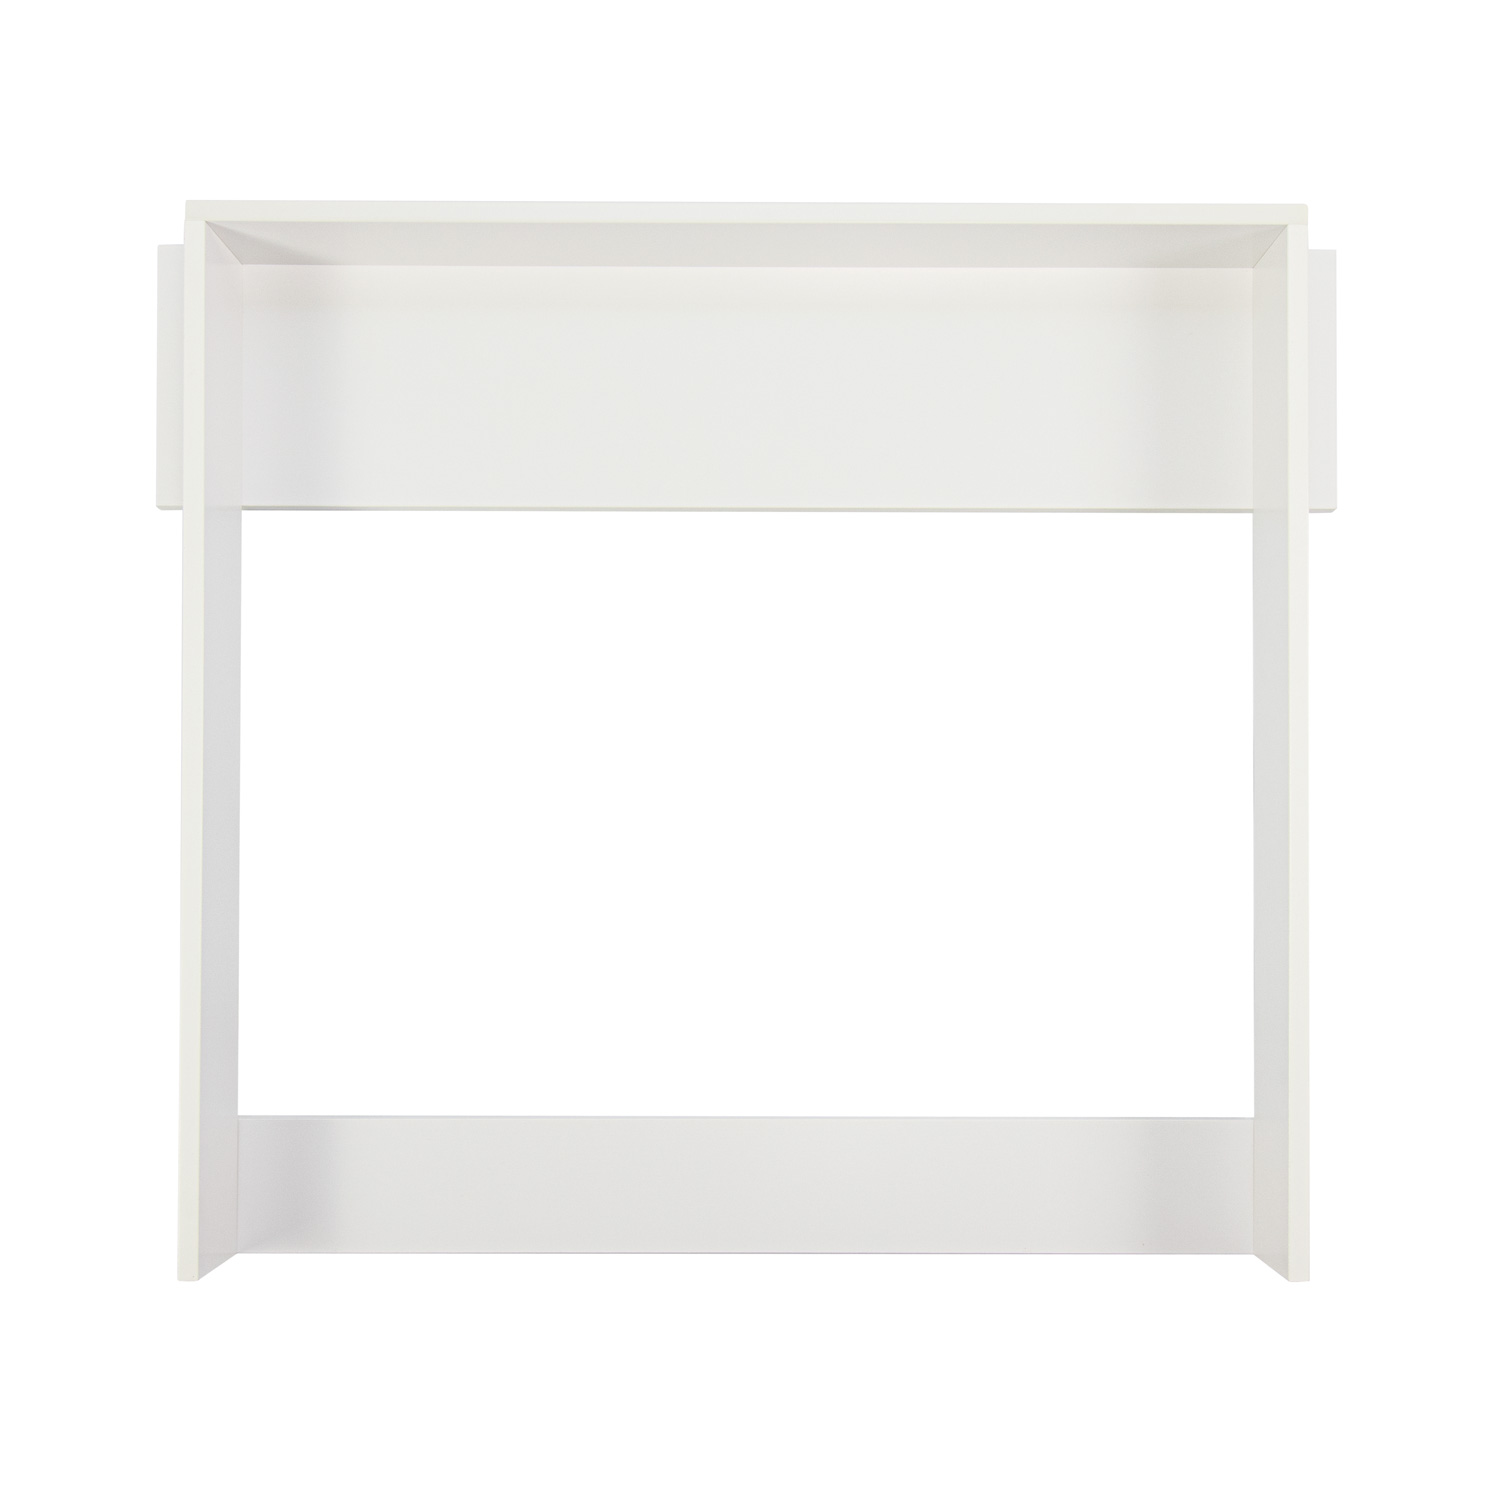 Konstantin changing top with wide cover, white, IKEA Koppang